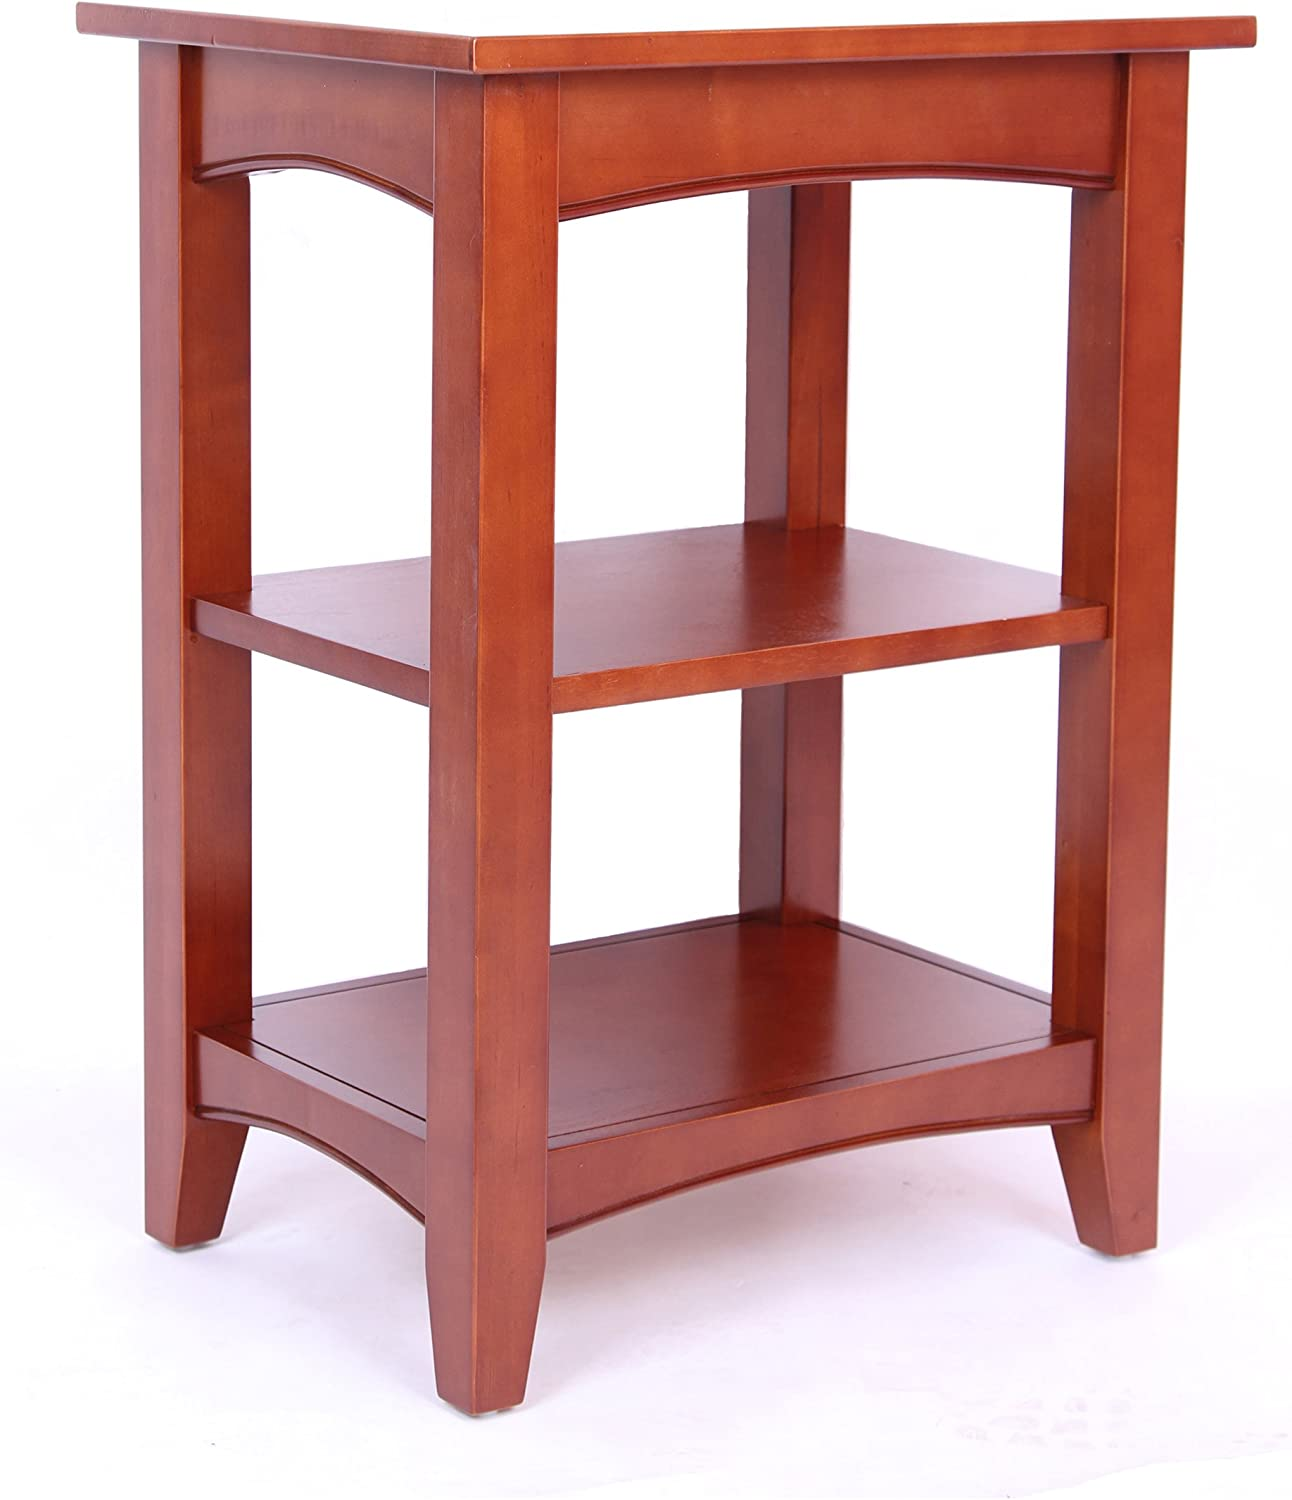 Alaterre Furniture ASCA0260 Shaker Cottage 2-Shelf End Table, Cherry